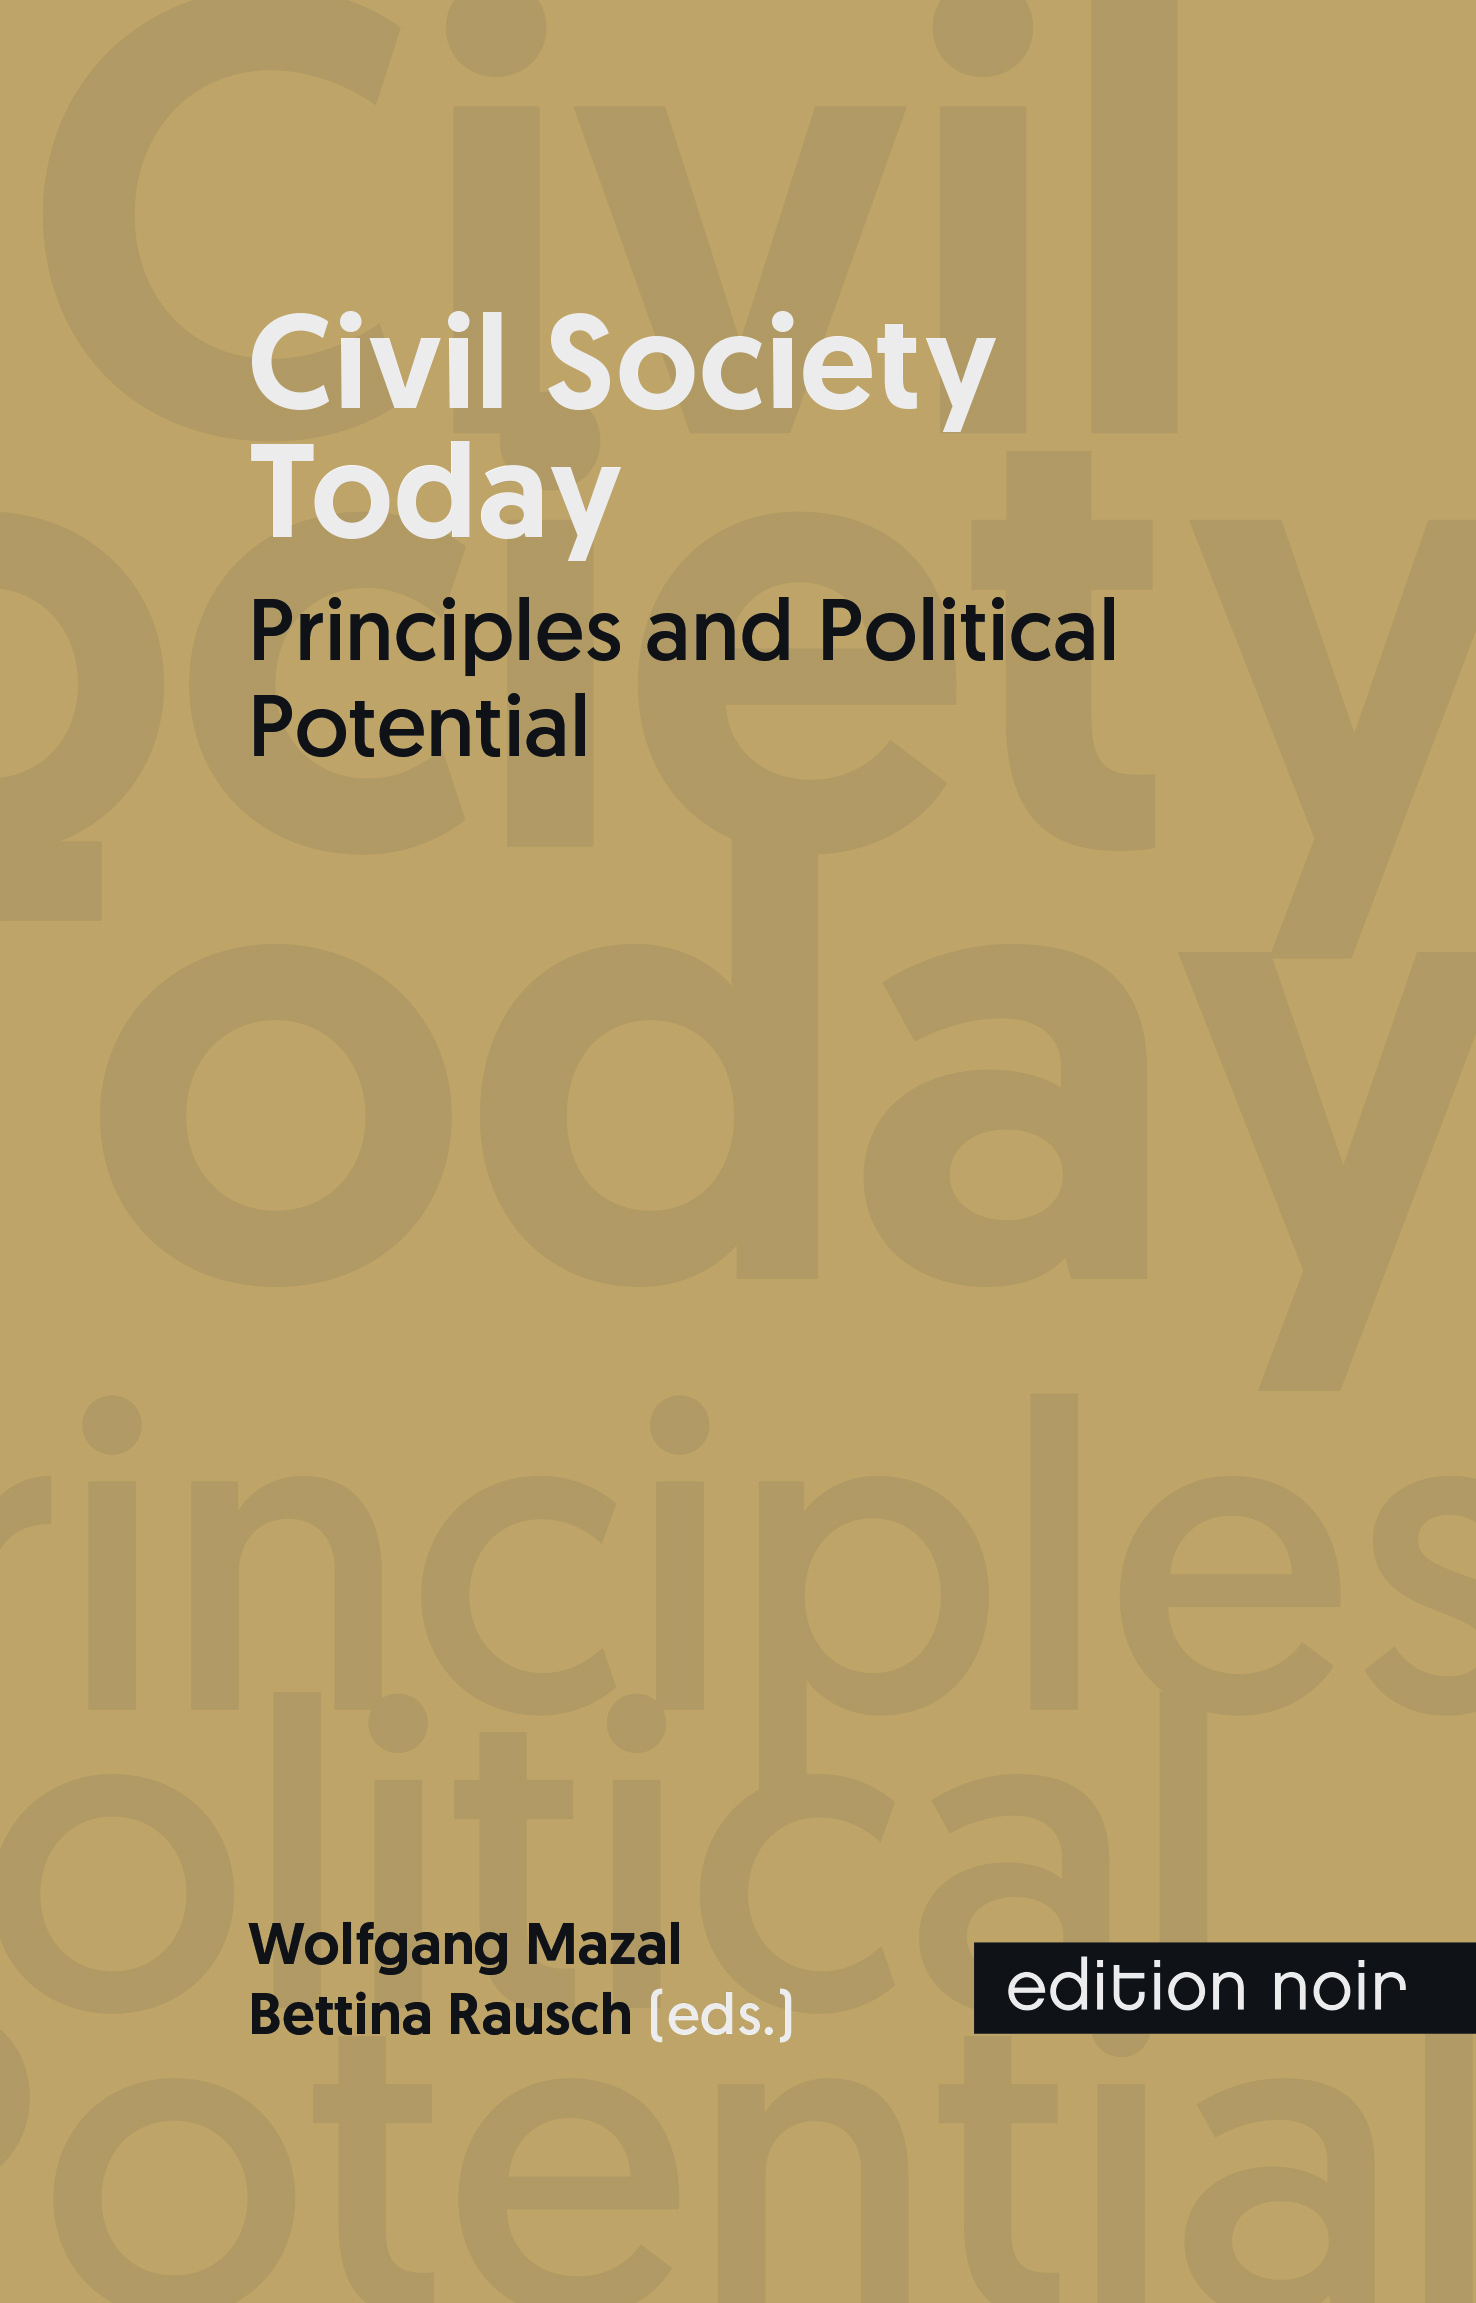 Civil Society Today. Principles and Political Potential